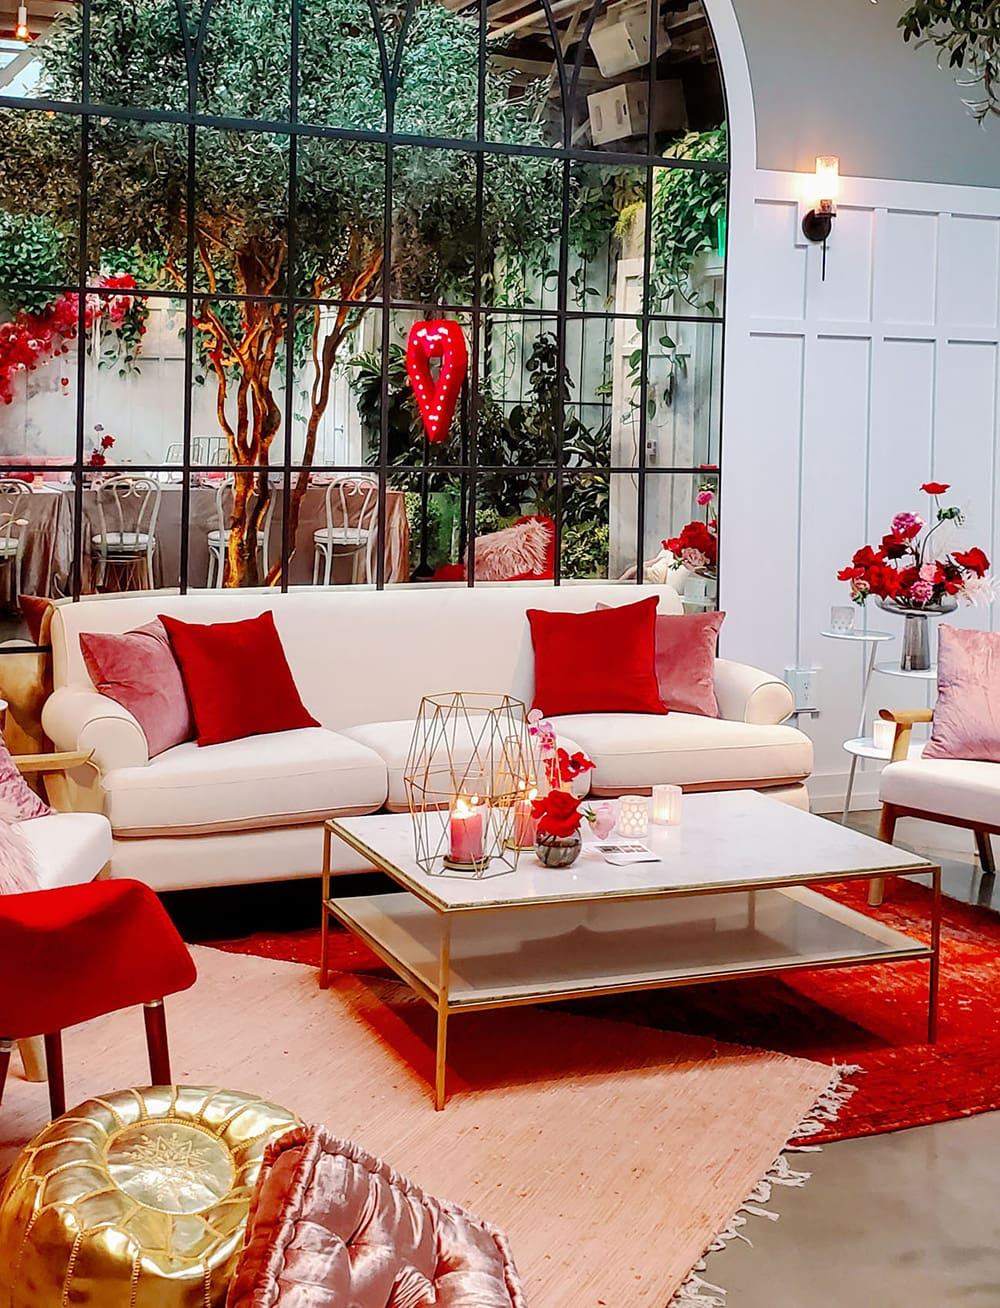 Modern Red & Pink Wedding Ideas | A modern wedding reception lounge setting featuring a white lounge decorated with red and pink pillows, a white coffee table with gold edges topped with candles and layered pink and red rugs. | Photography: Madeline Kate Photography via Together Journal